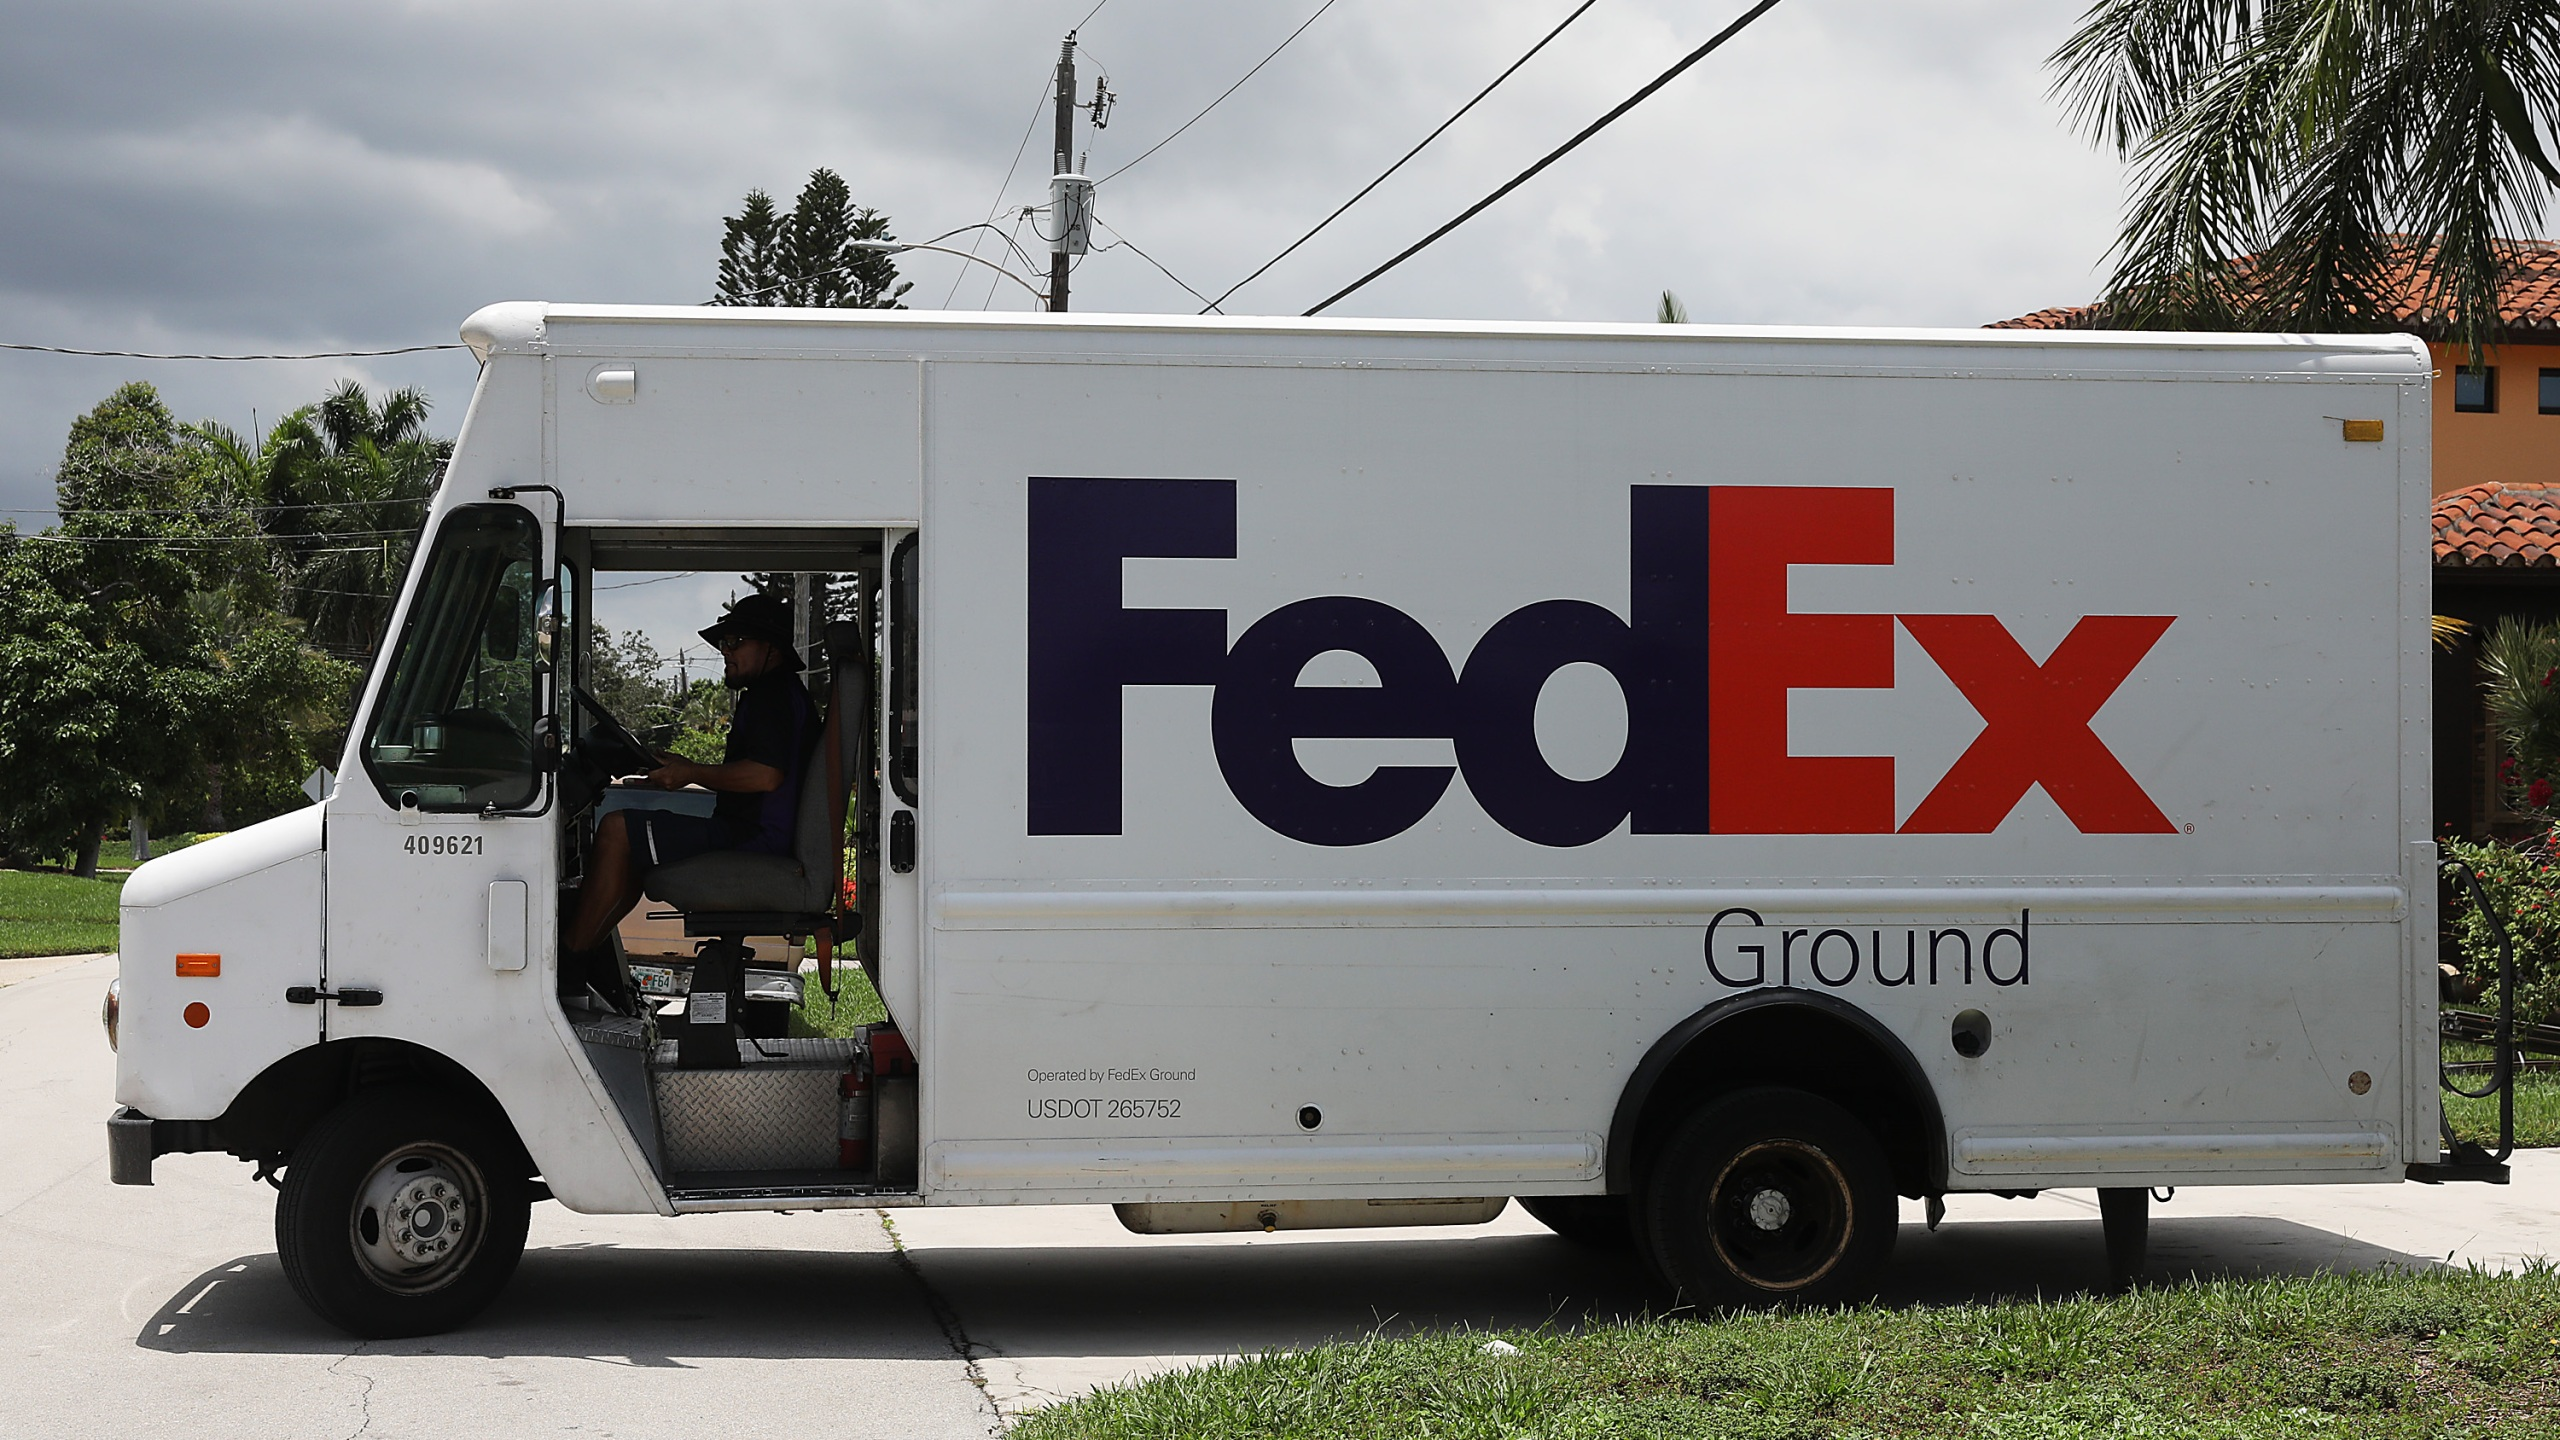 A FedEx delivery truck is seen on August 07, 2019 in Fort Lauderdale, Florida. (Joe Raedle/Getty Images)